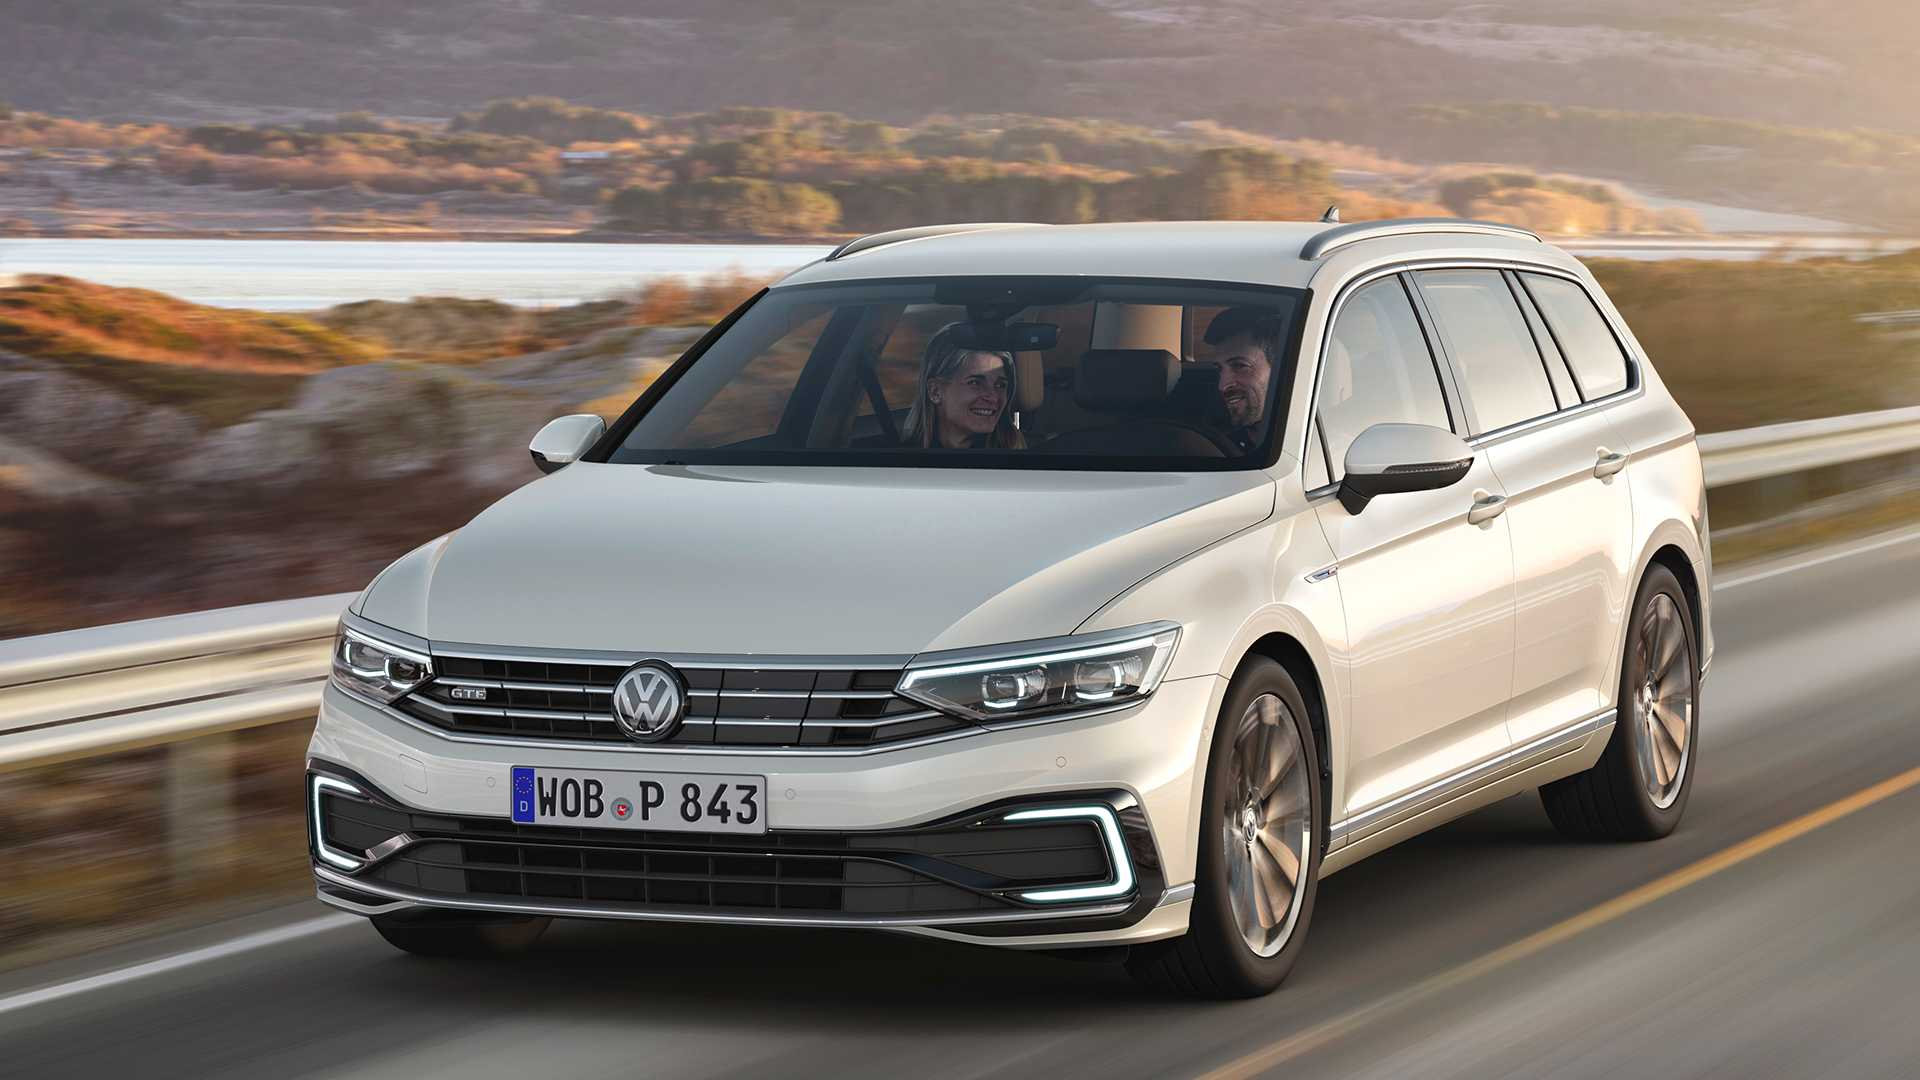 2020 VW Passat Tdi Exterior and Interior